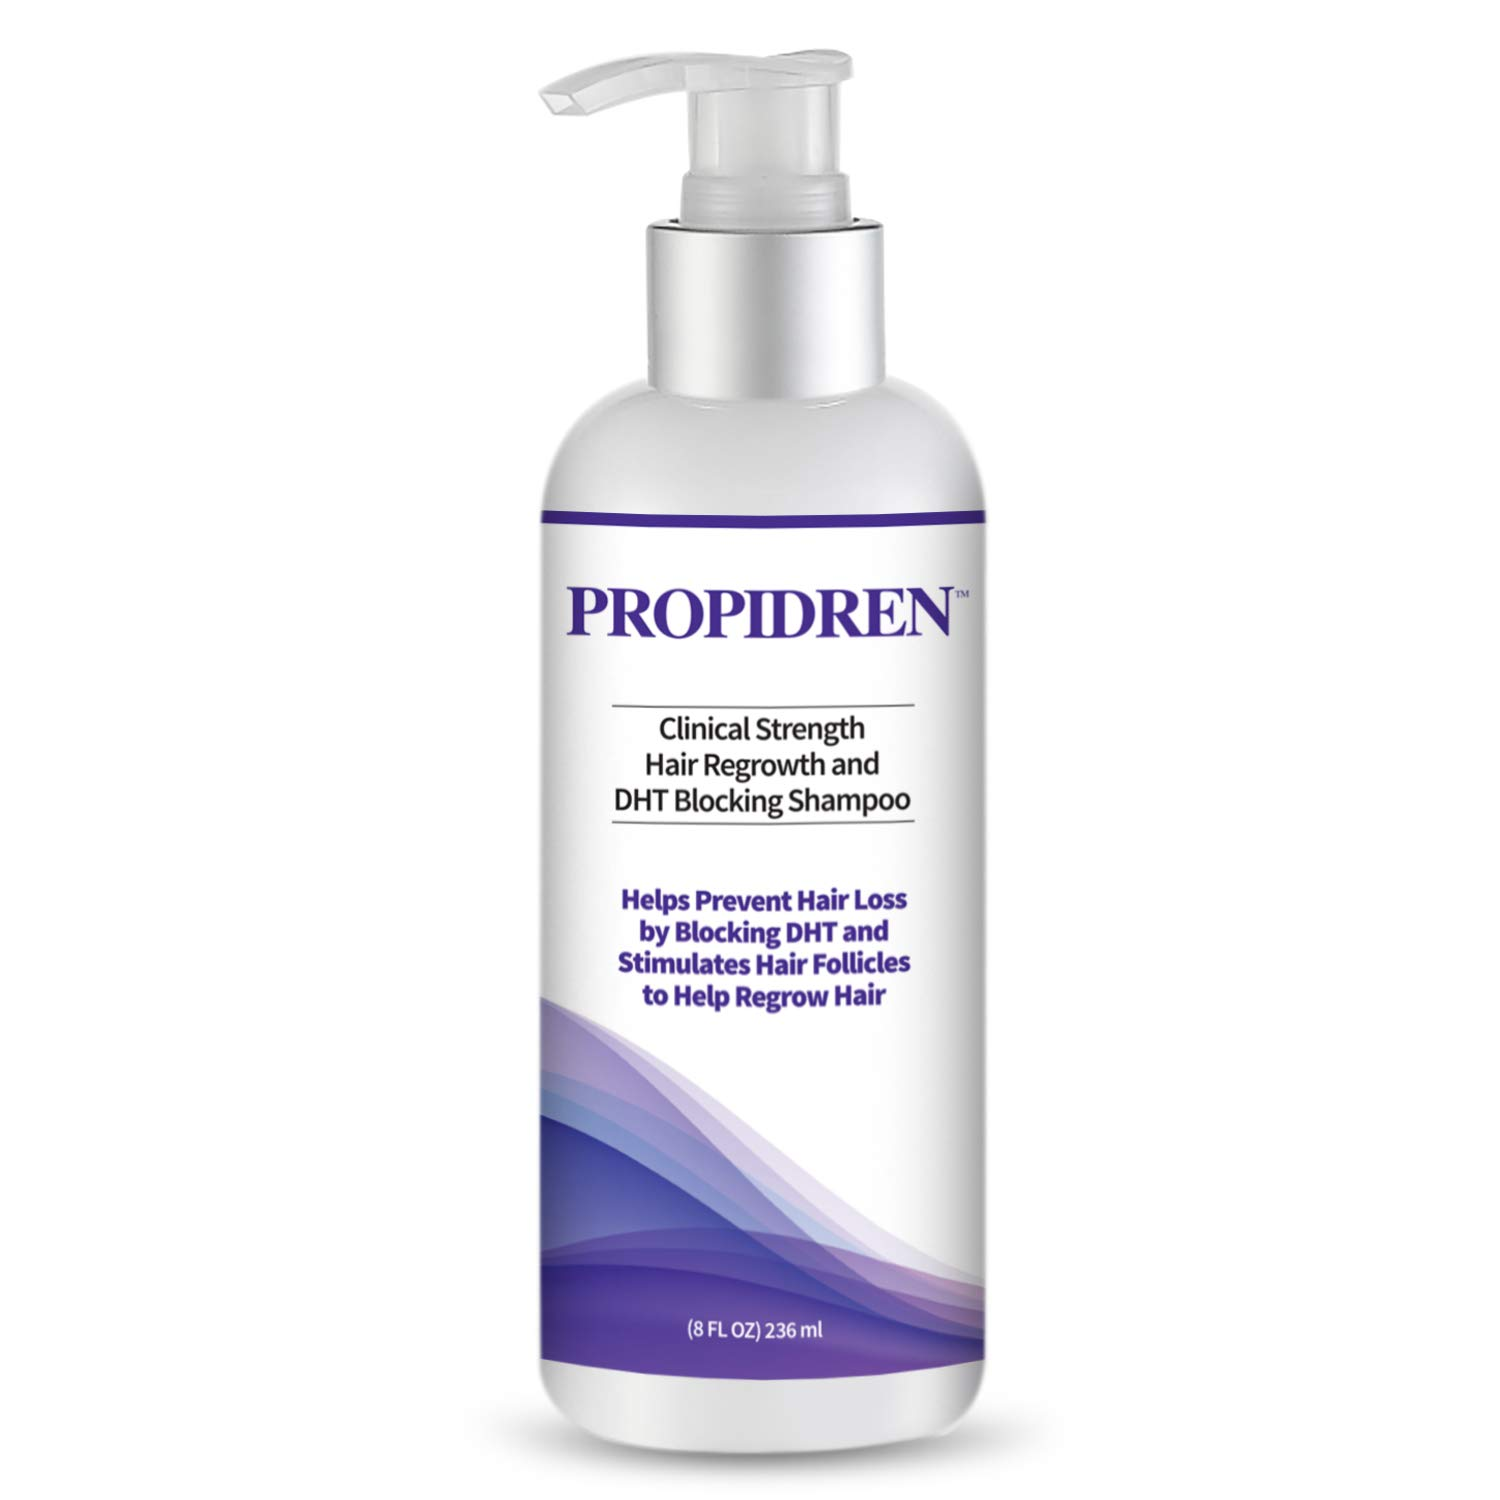 Hairgenics Propidren Hair Growth Shampoo for Thinning and Balding Hair with Biotin, Keratin, and Powerful DHT Blockers to Prevent Hair Loss by Pronexa